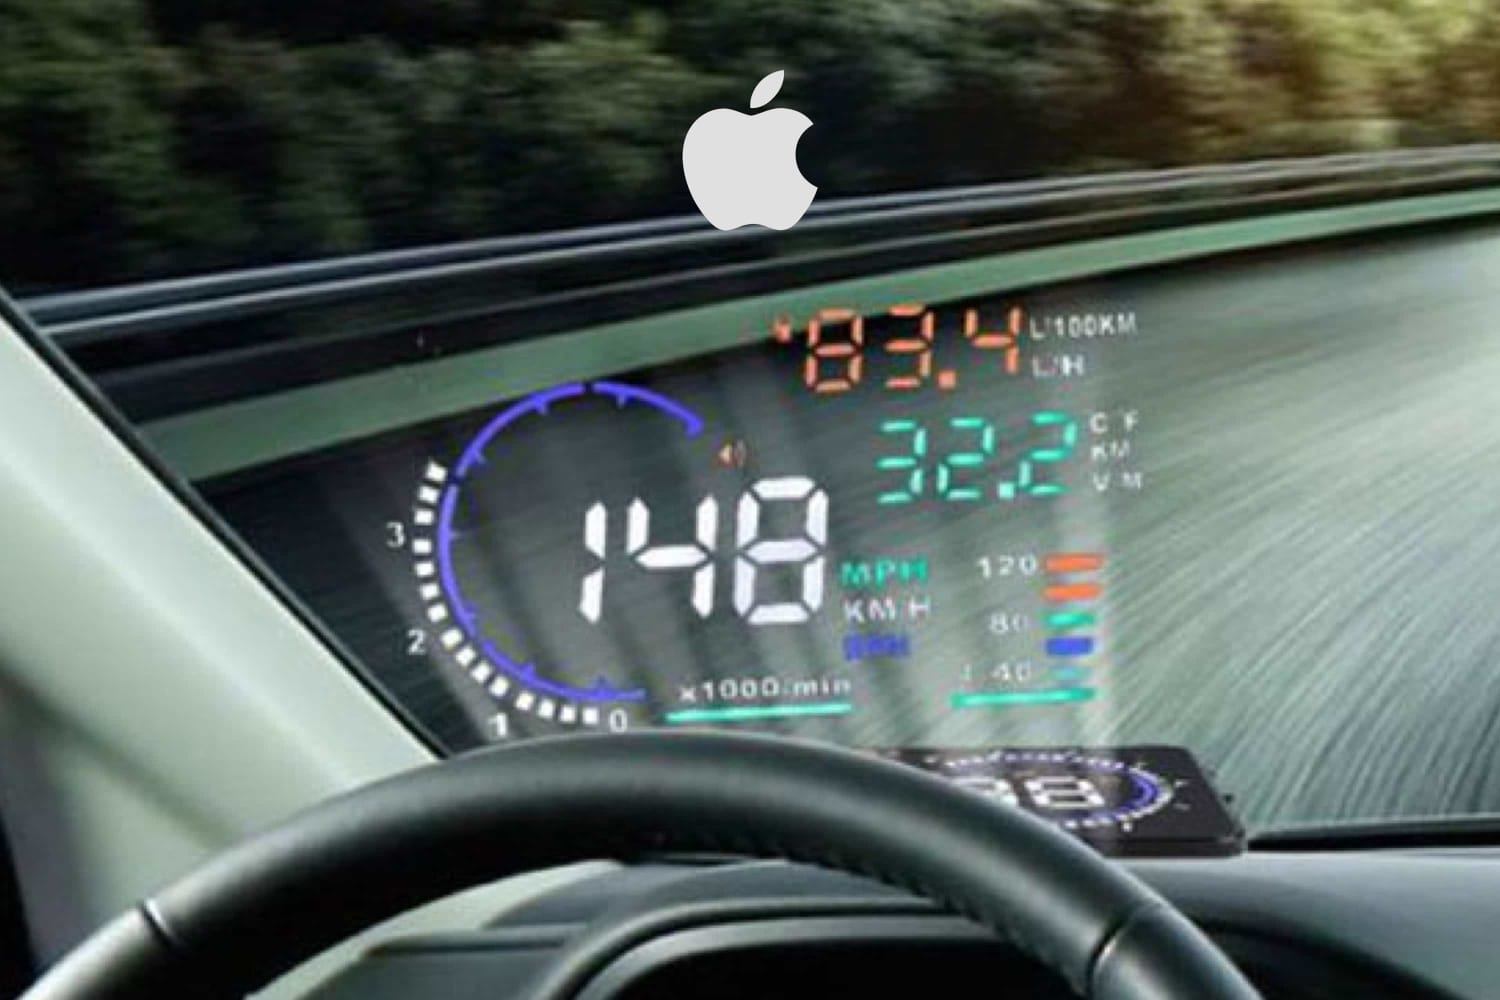 apple-developing-holographic-dashboard-with-heads-up-display-20201216-1